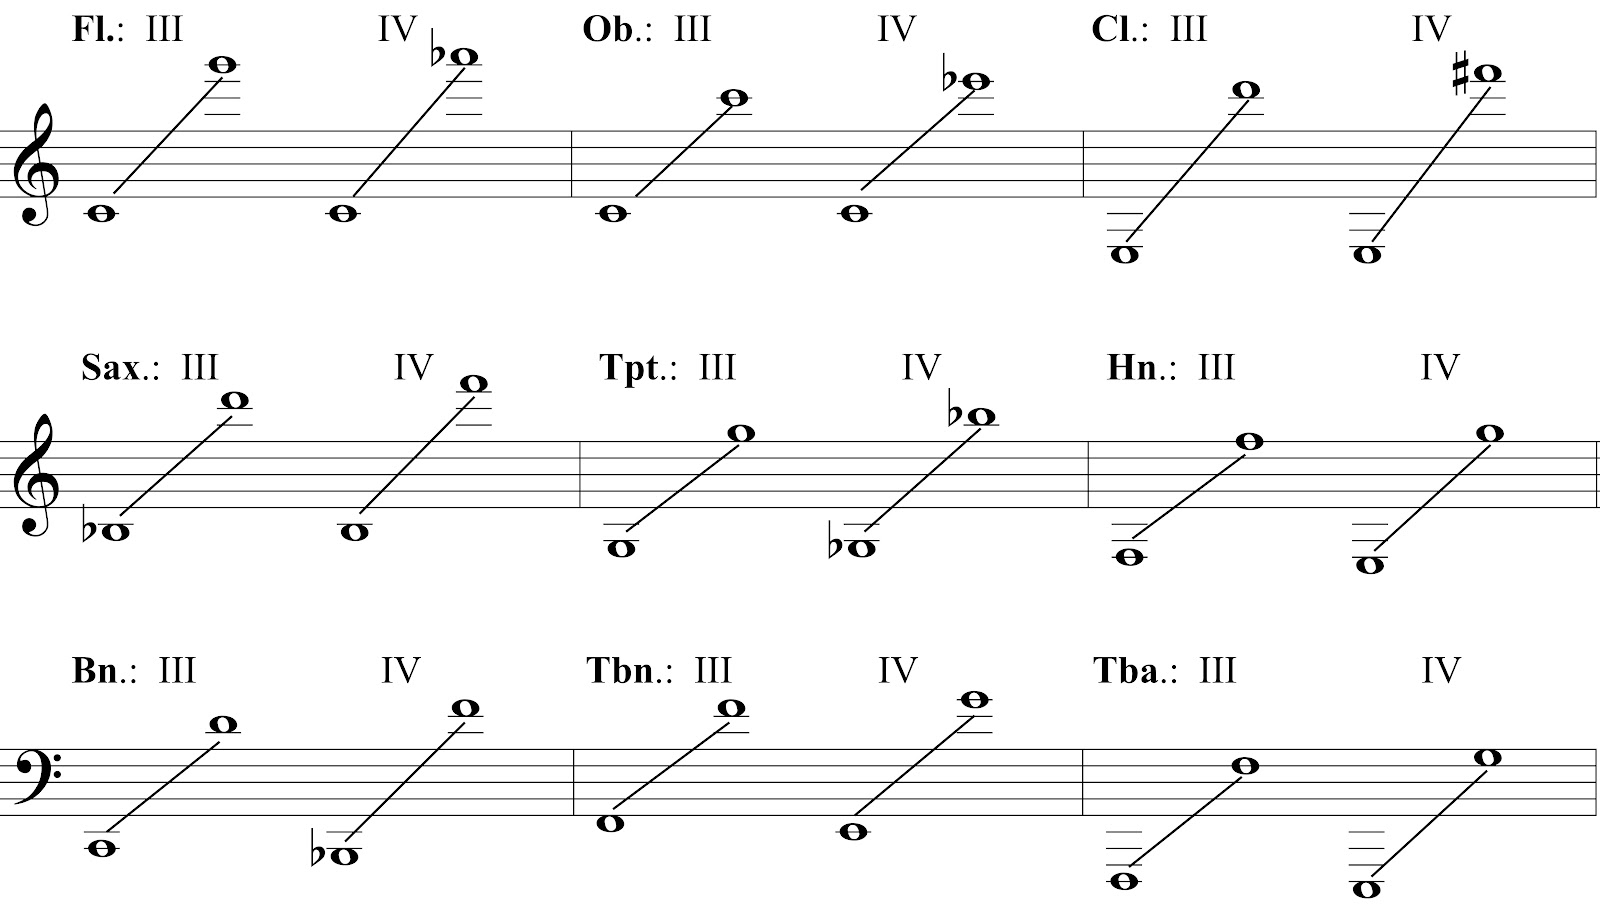 Chart Of Band Instrument Ranges For Levels Iii And Iv According To Saskatchewan Ociation